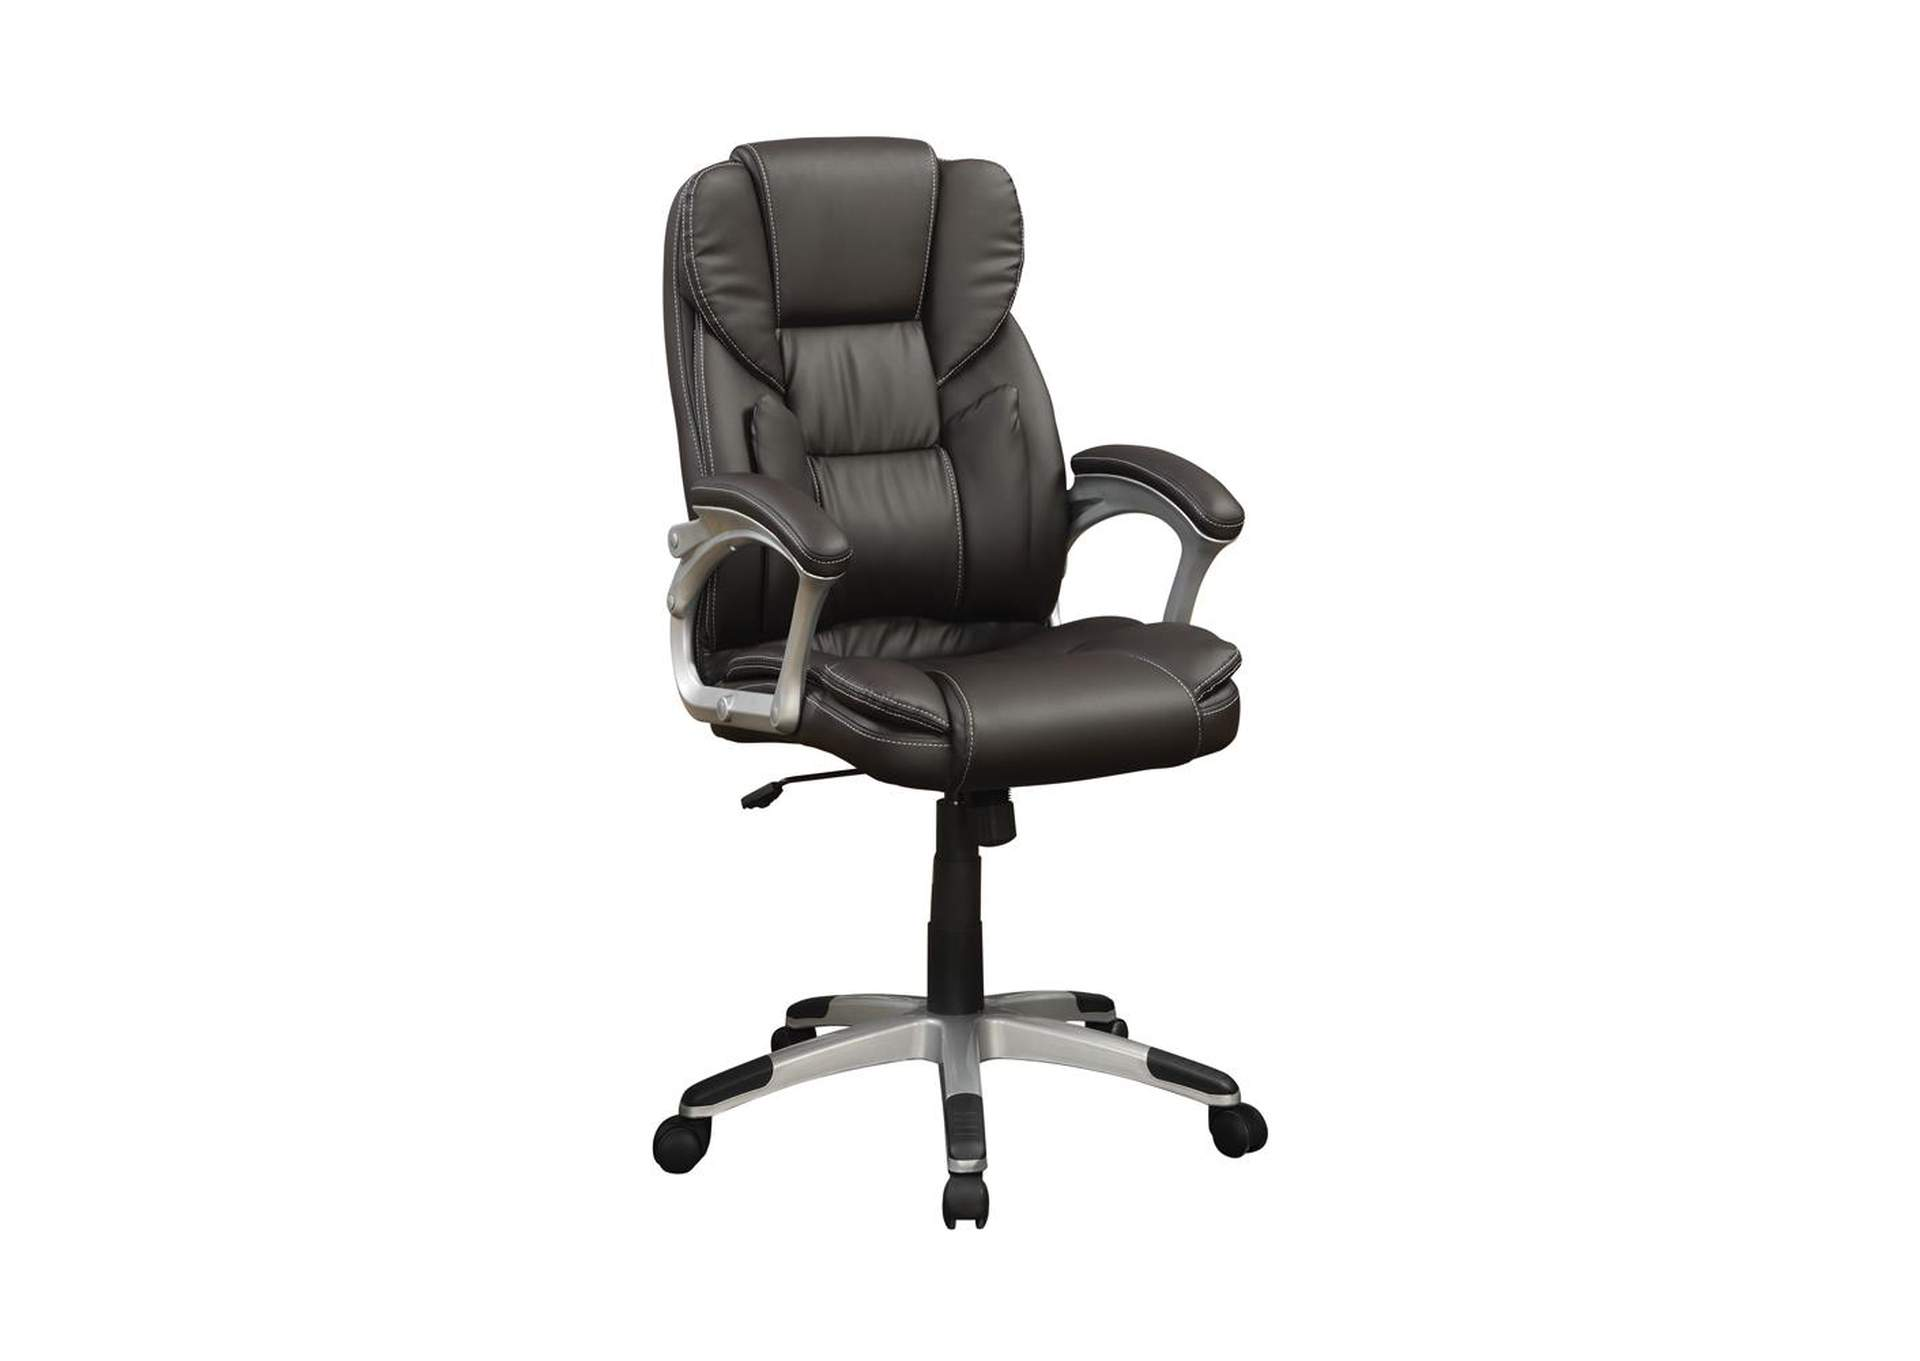 Silver Transitional Dark Brown Office Chair,Coaster Furniture